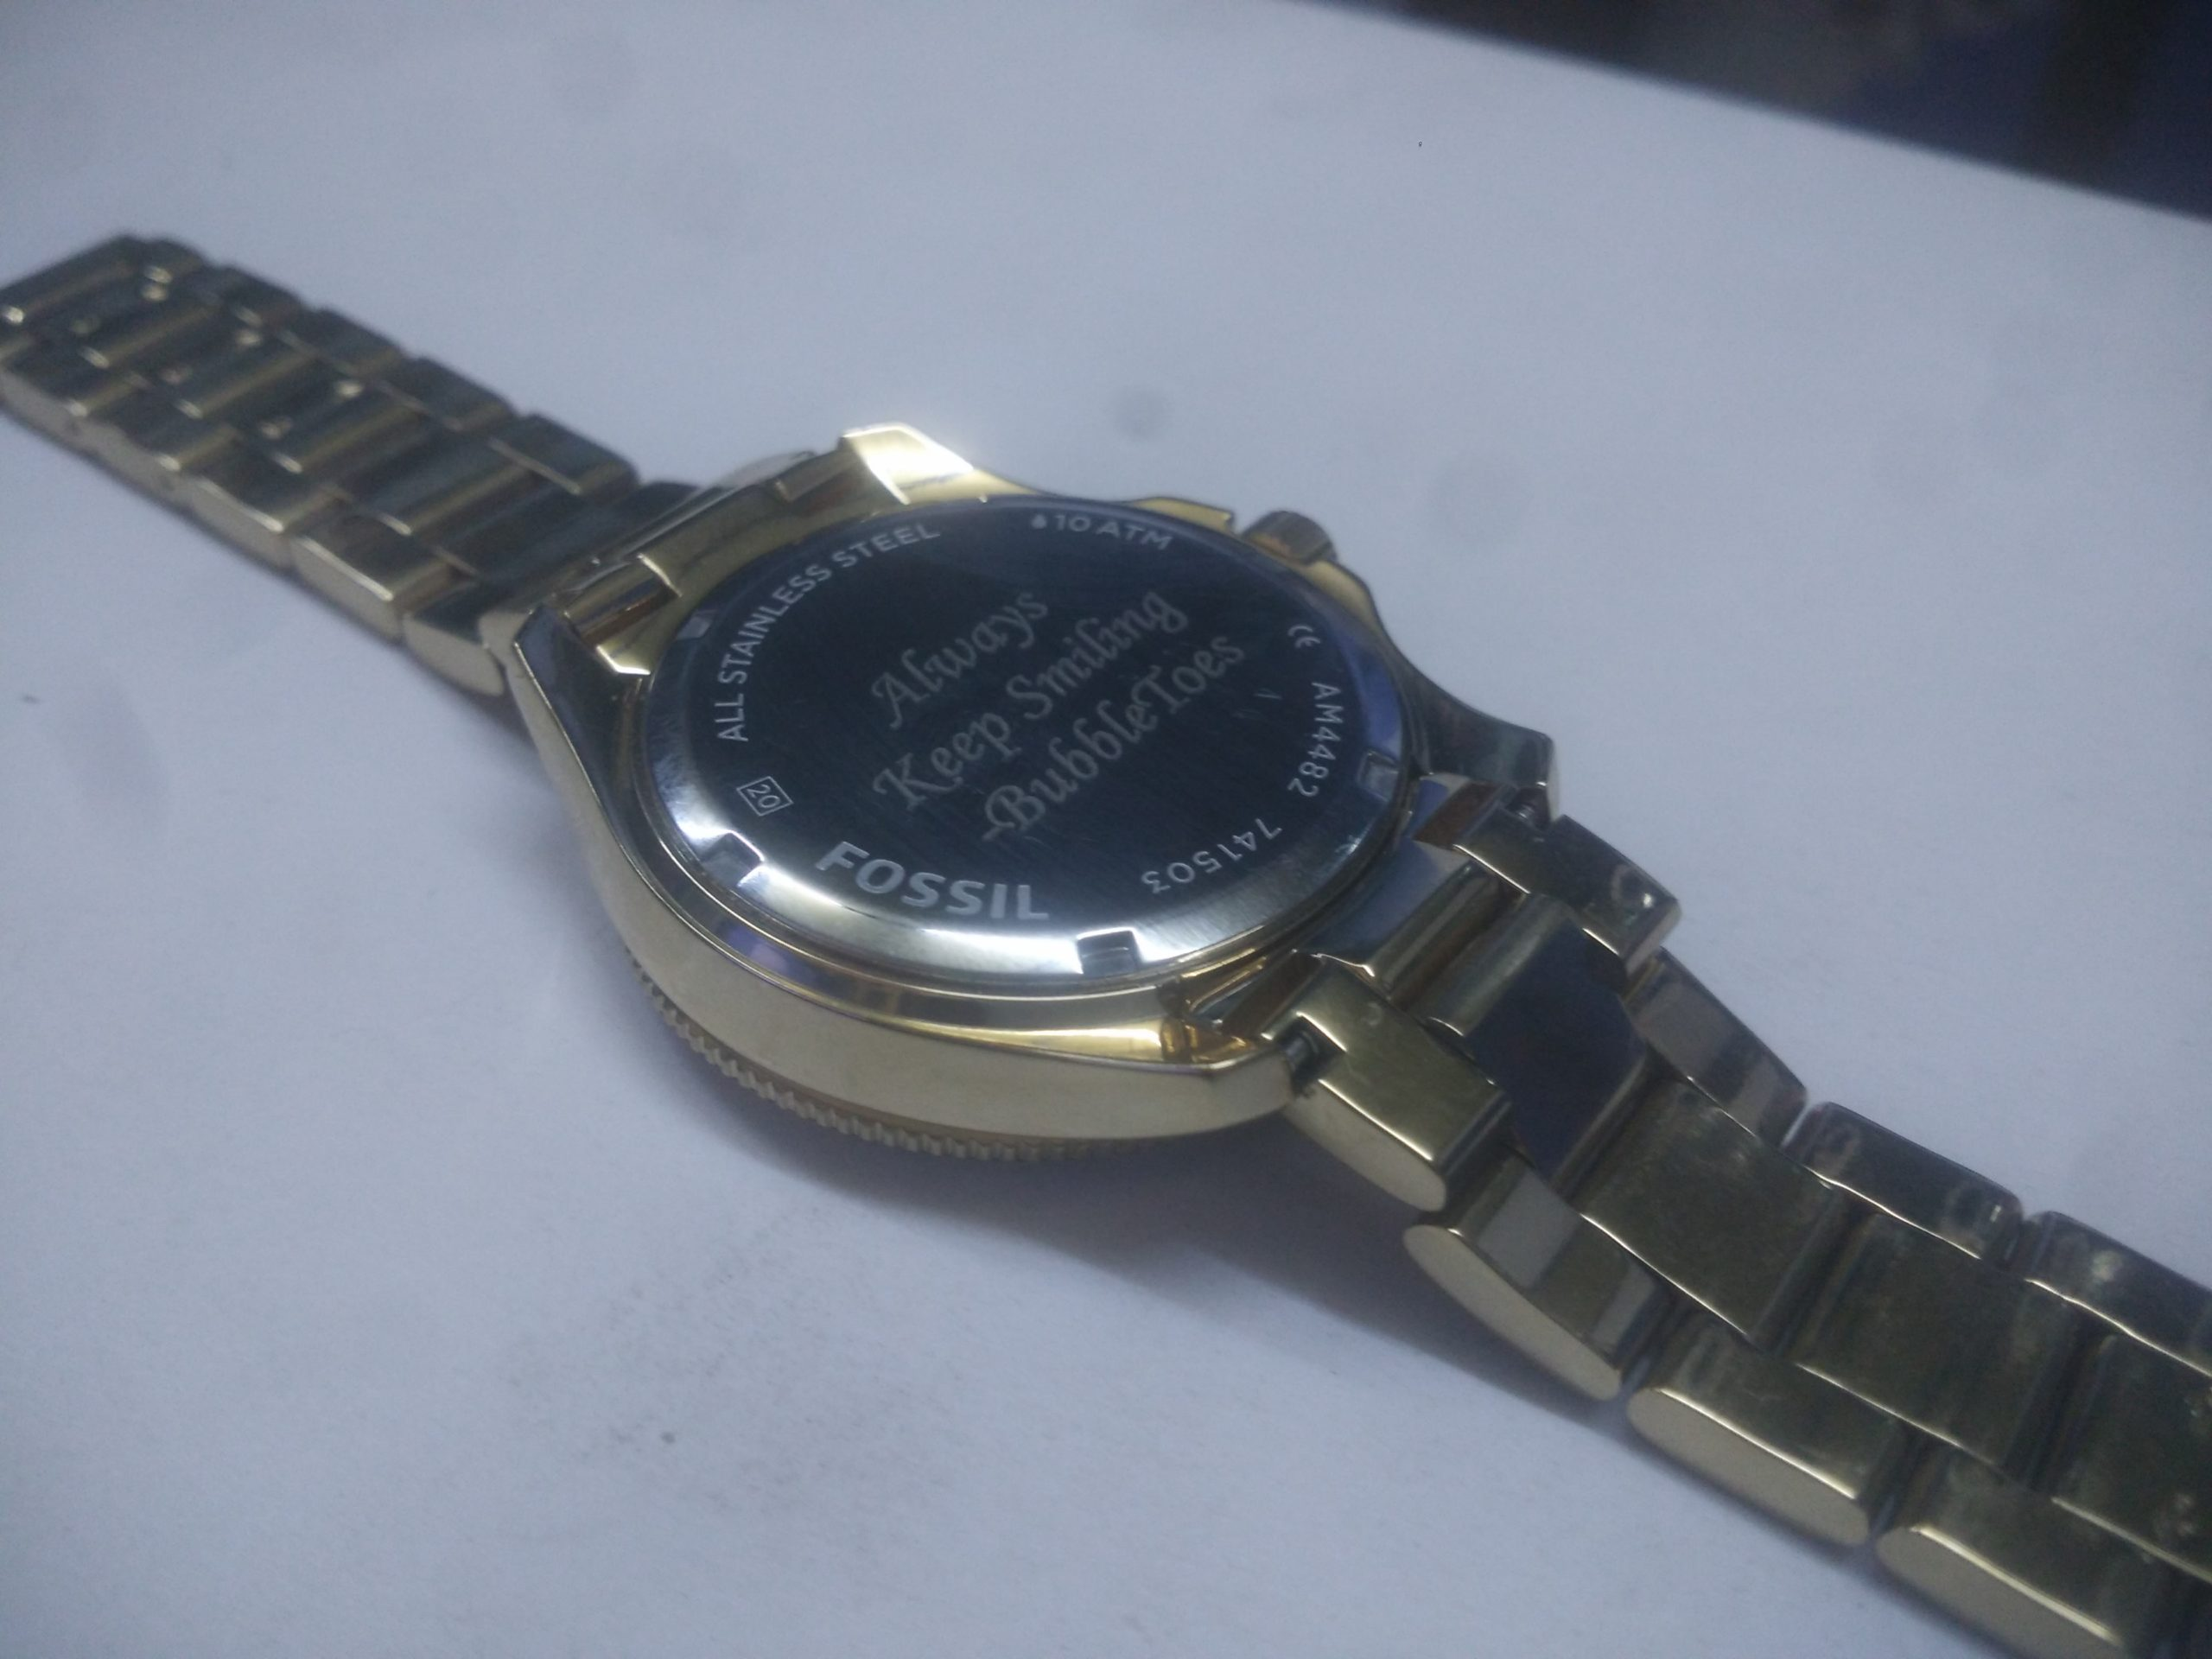 Wrist watch laser marking